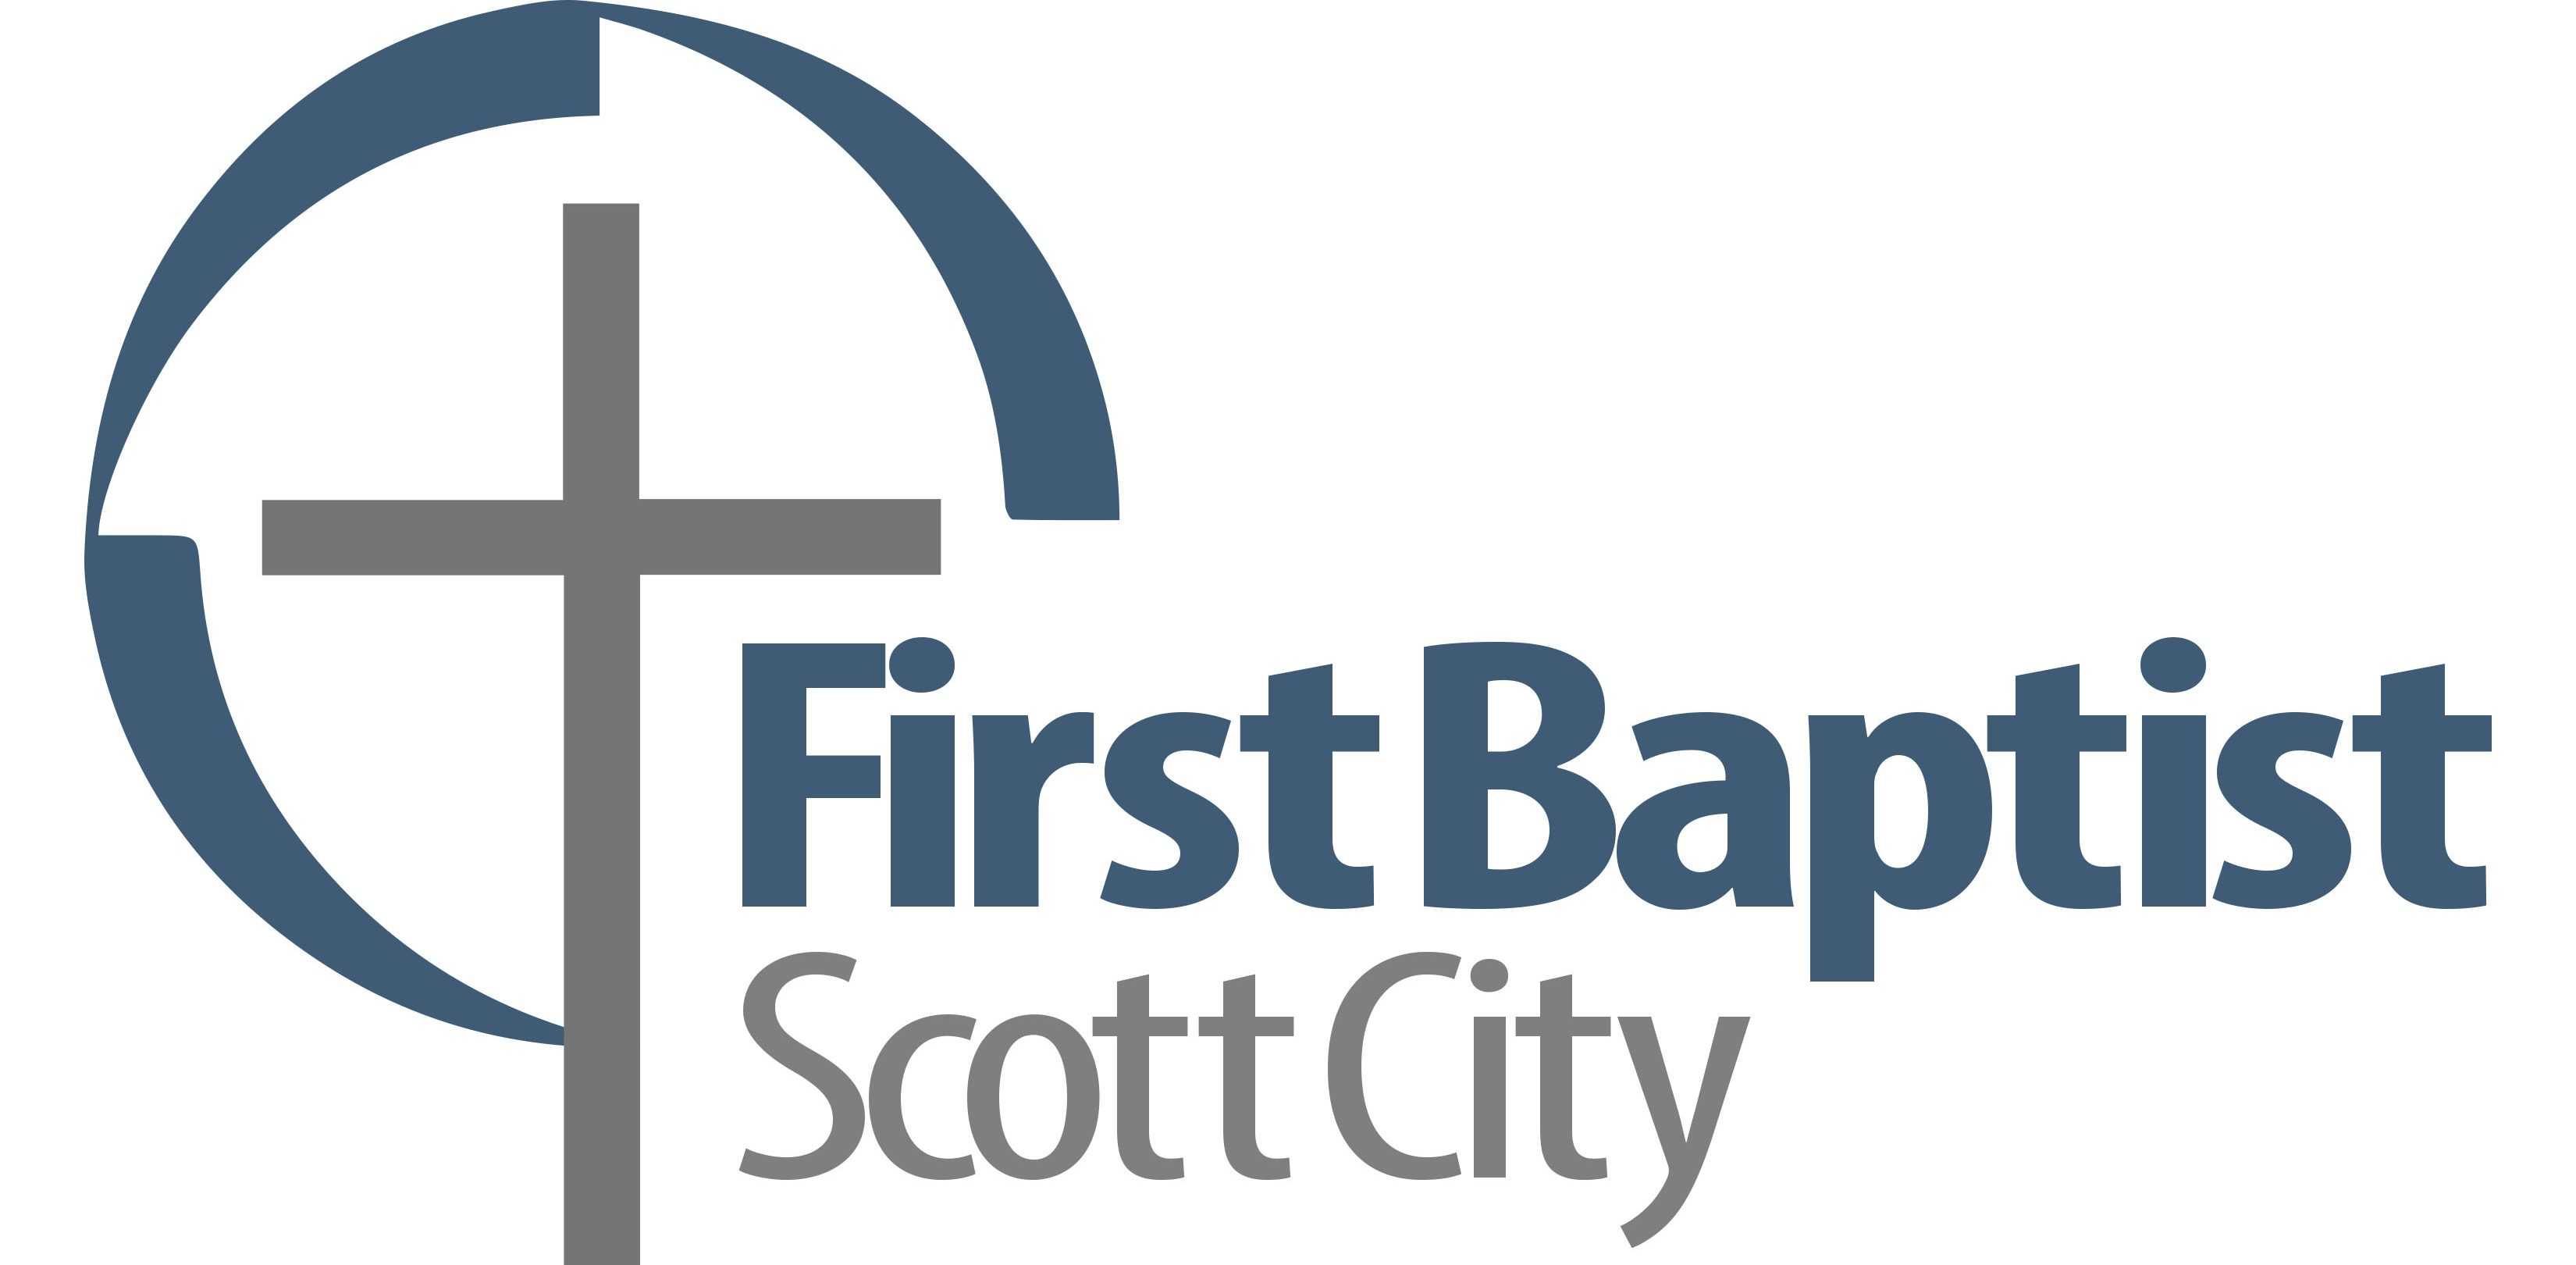 First Baptist Scott City, MO